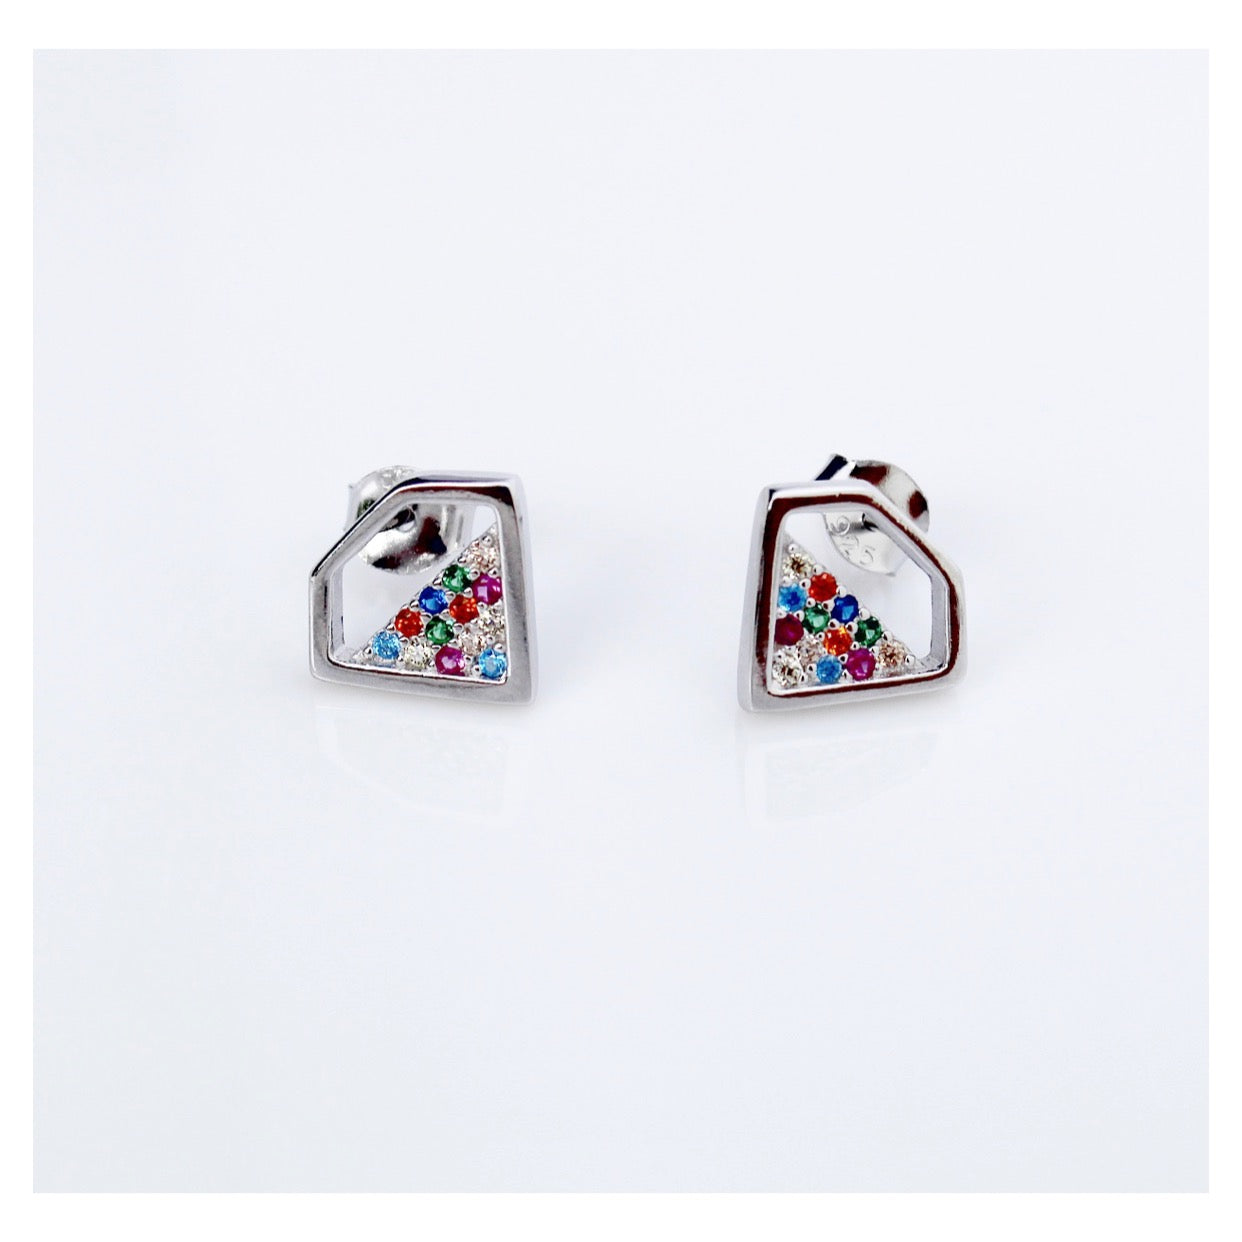 Colorful Stud Earrings, Rainbow Diamond Earrings by Kesley Boutiuqe, KesleyShop.com, Kesleyshop, Girlwith3jobs, Girlwith3josb.com, stud earrings, pushback earrings, colorful earrings, rainbow earrings, trendy earrings, trendy jewelry, influencer jewelry, earrings, gifts for her, college gifts, soroty gifts, holiday gifts, christmas gifts, fashion, style, new jewelry, buzzfeed